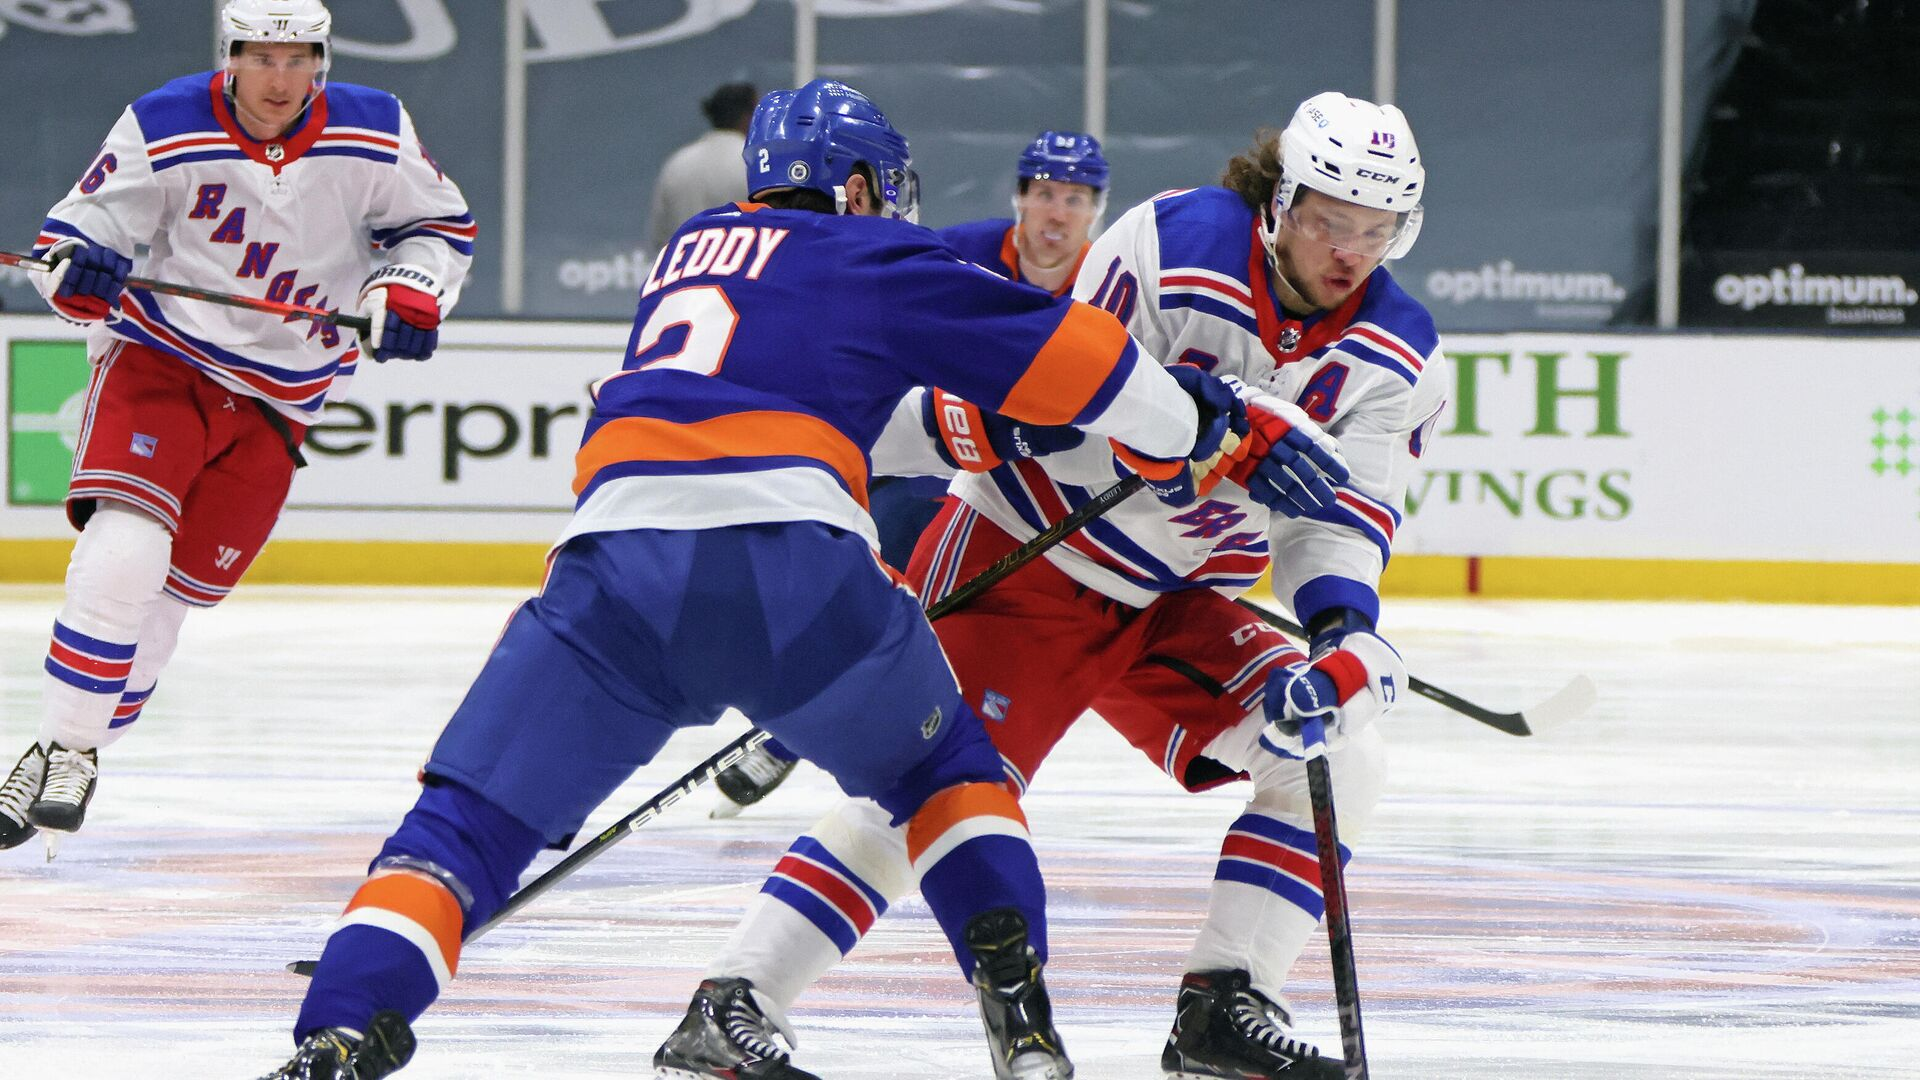 UNIONDALE, NEW YORK - APRIL 09: Artemi Panarin #10 of the New York Rangers carries the puck in on Nick Leddy #2 of the New York Islanders at Nassau Coliseum on April 09, 2021 in Uniondale, New York.   Bruce Bennett/Getty Images/AFP (Photo by BRUCE BENNETT / GETTY IMAGES NORTH AMERICA / Getty Images via AFP) - РИА Новости, 1920, 10.04.2021